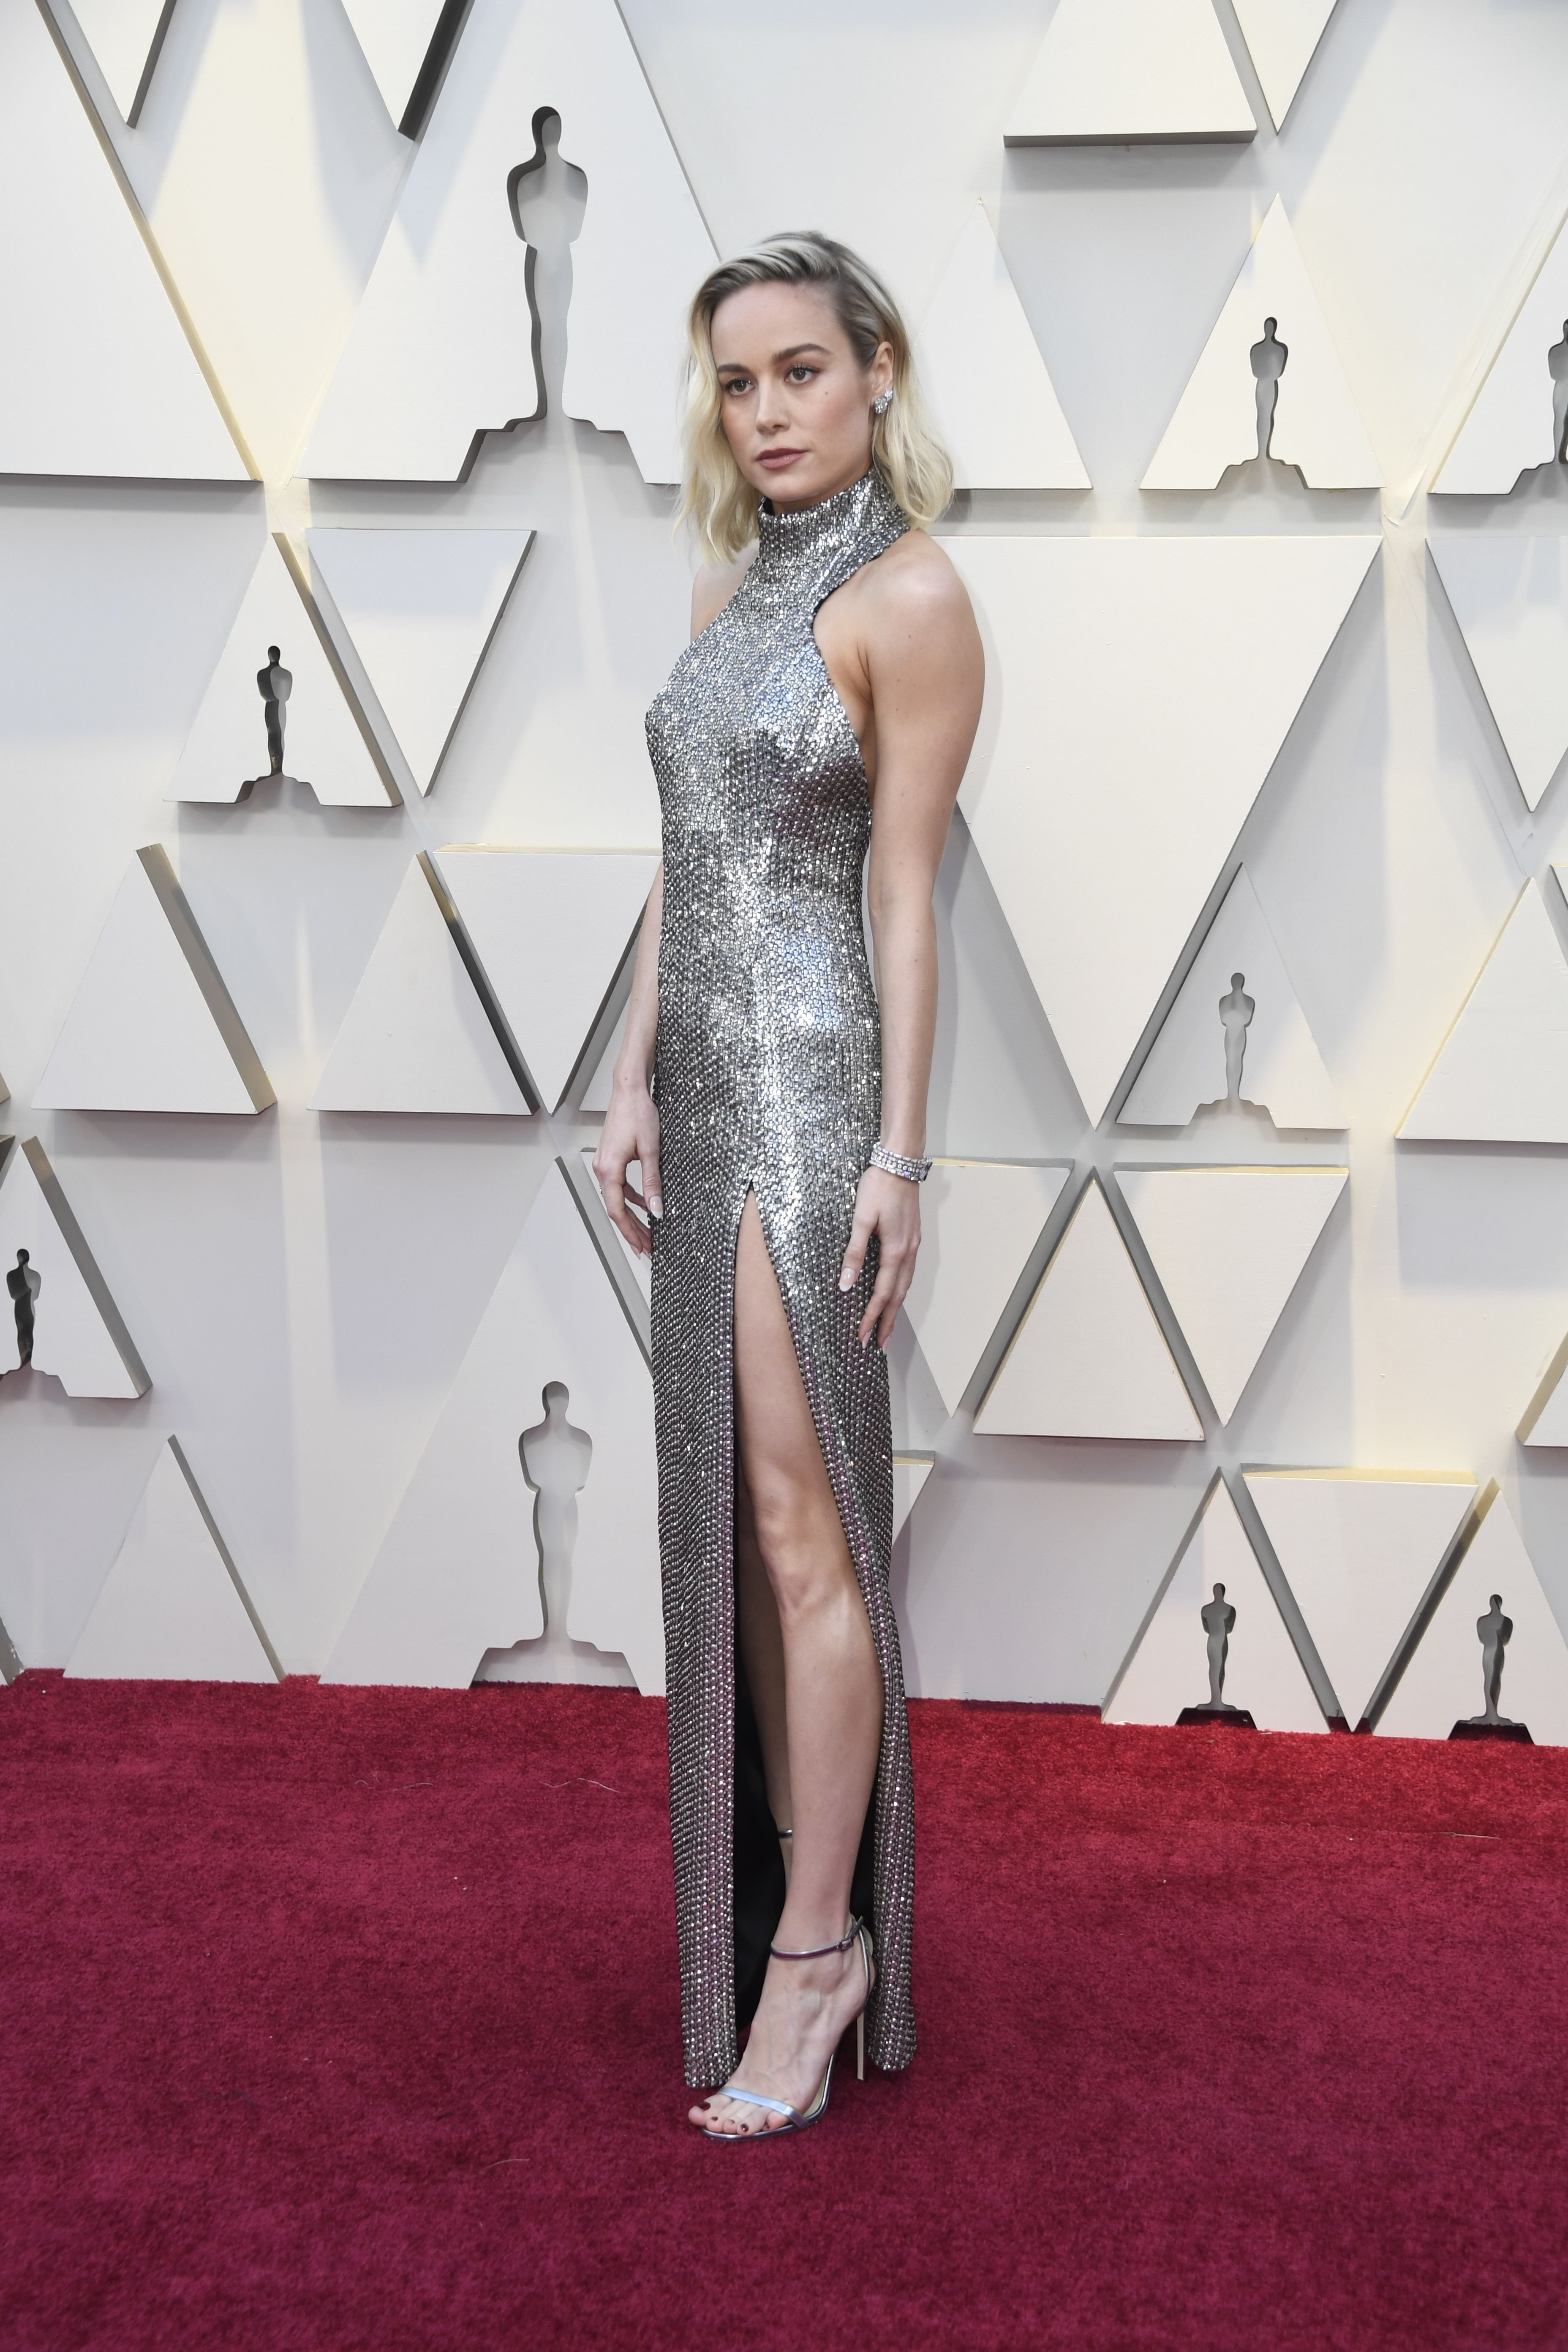 Oscars 2019 Best Dressed & Fashion from the Red Carpet ...